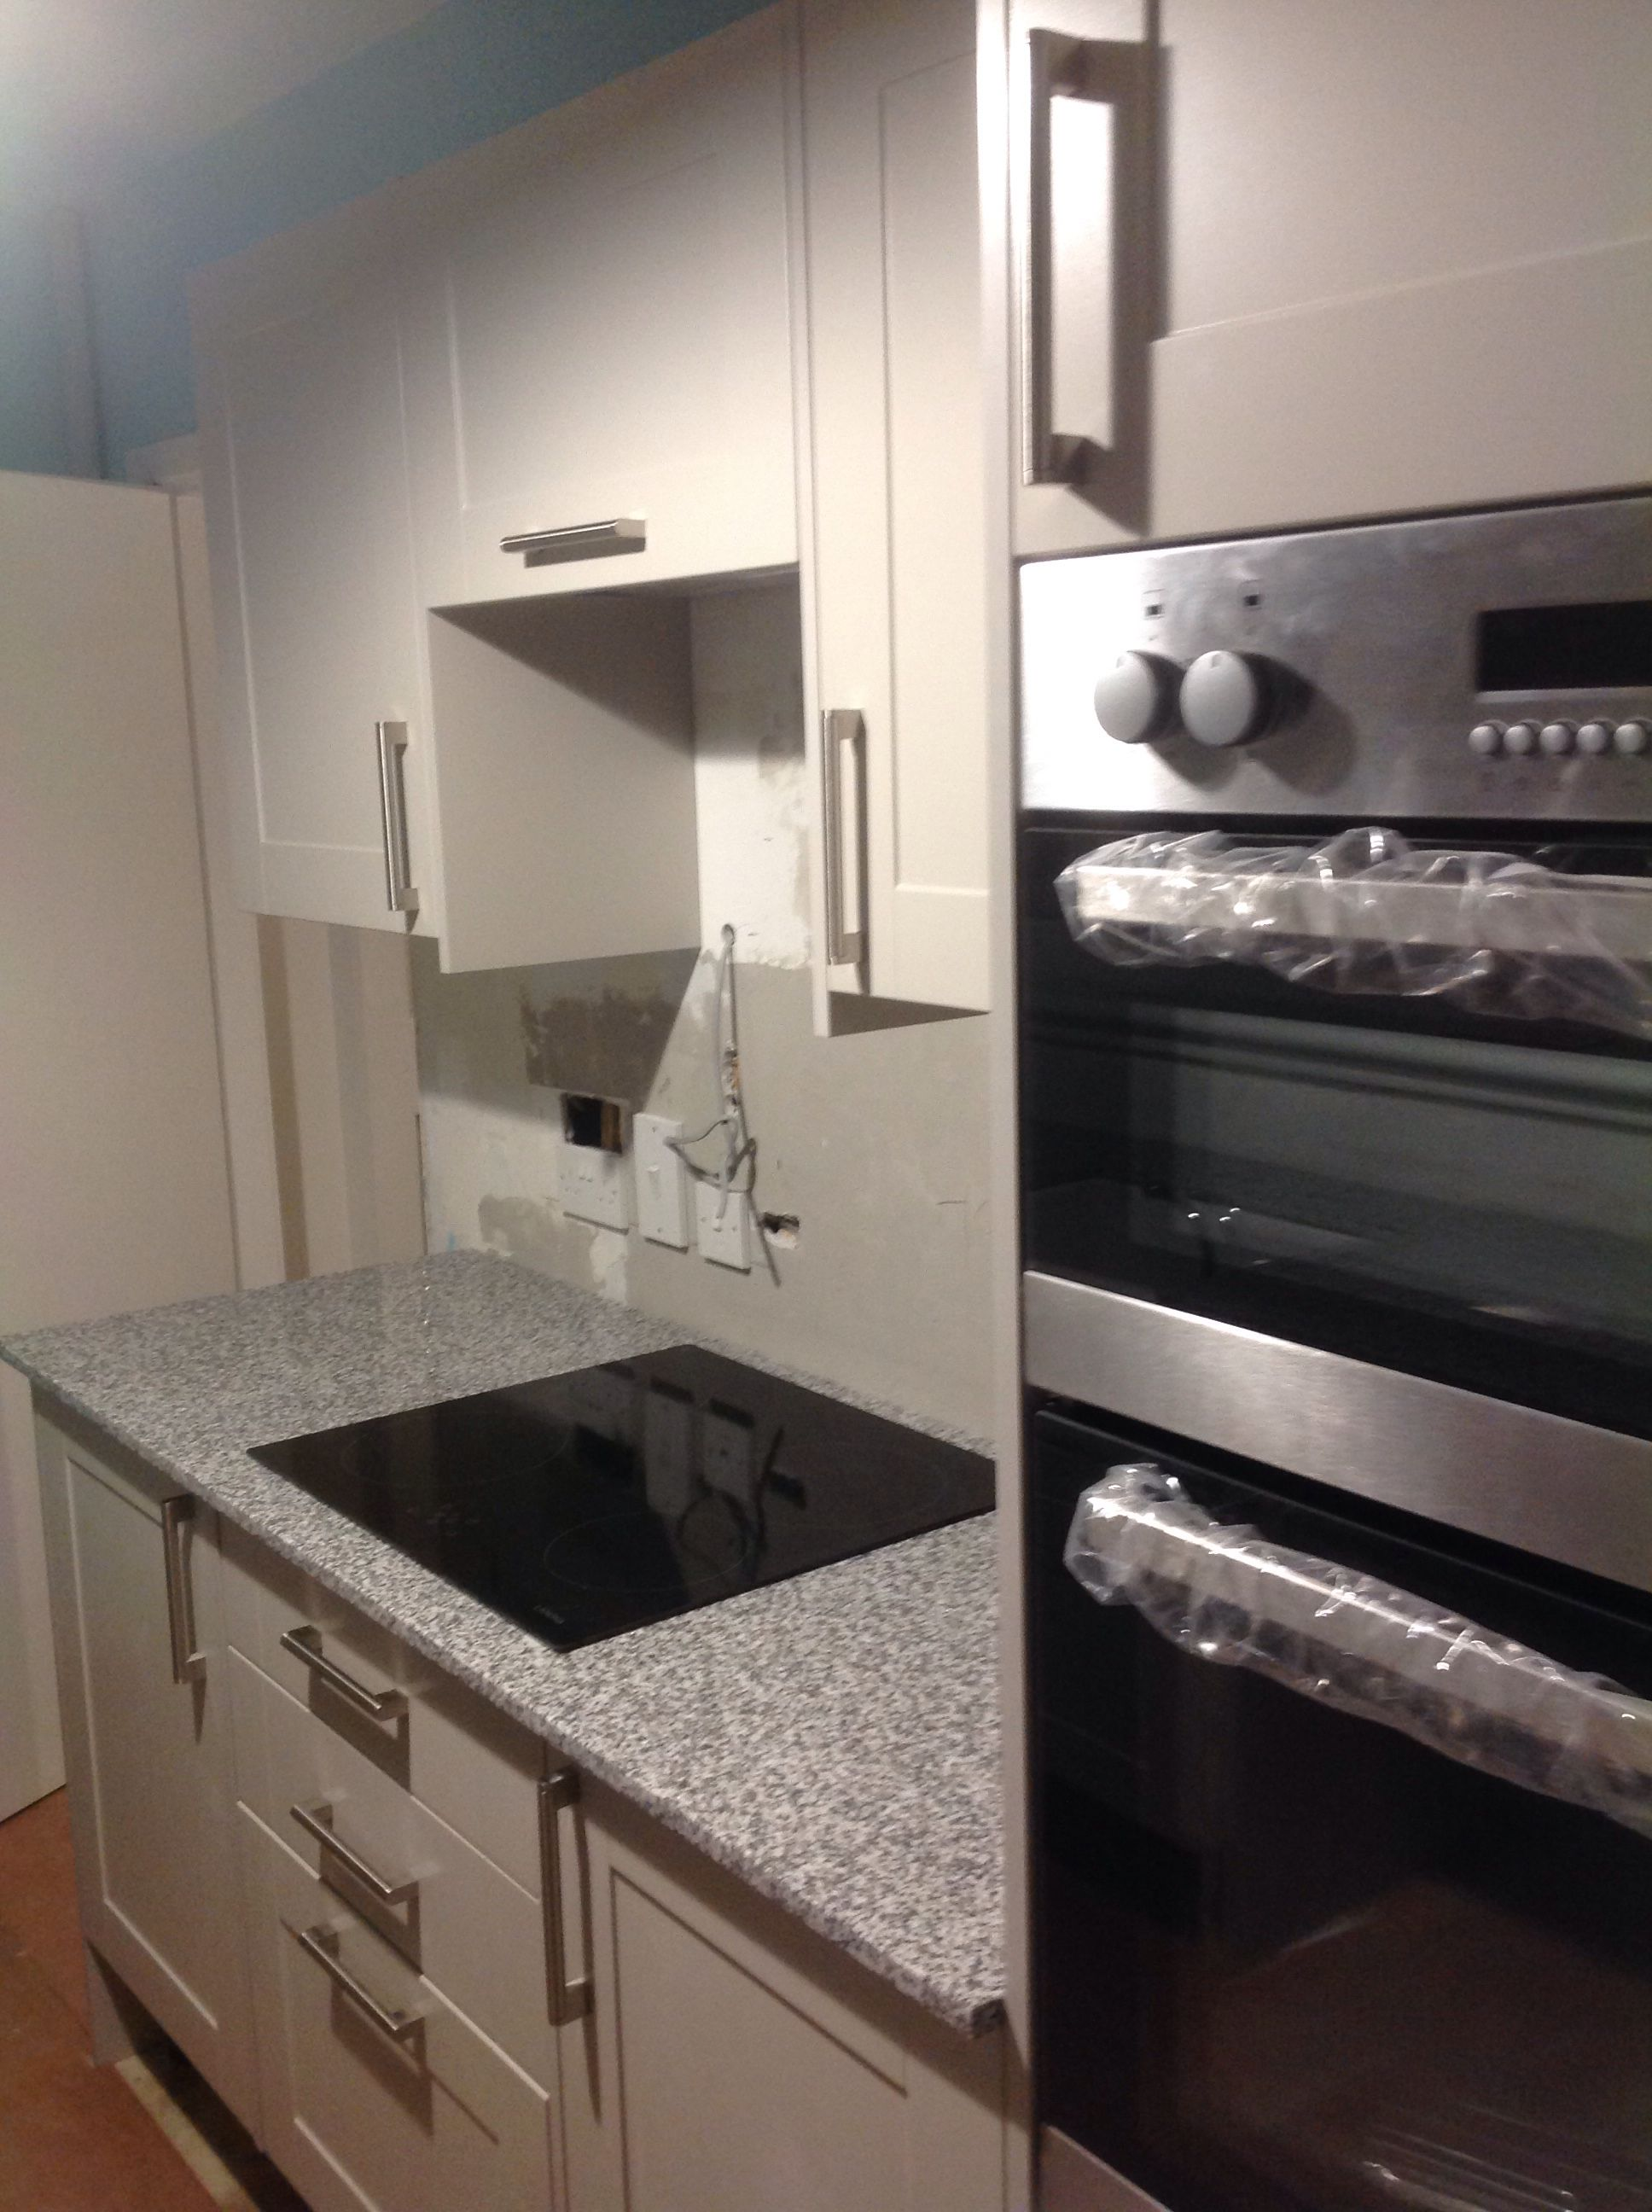 Home kitchen collection kitchen families glendevon family glendevon - Howdens Burford Grey Kitchen And Granite Surfaces Just Fitted And I Love It